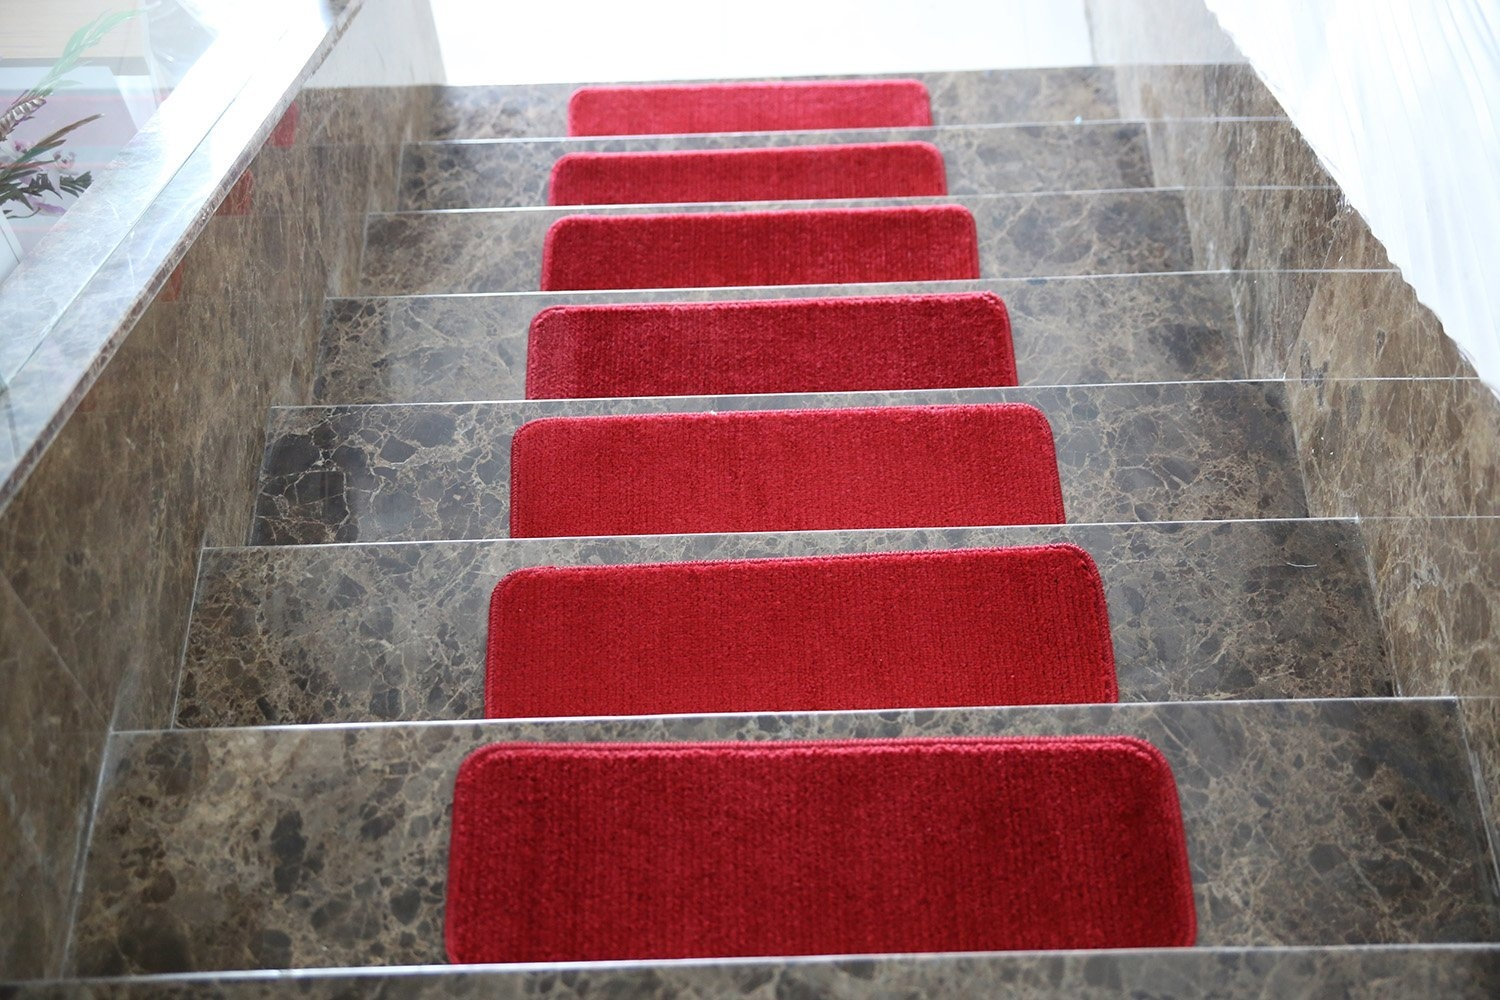 Softy Stair Treads Solid Red Set Of 7 Skid Resistant Rubber | Ottomanson Softy Stair Treads | Carpet Stair | Softy Carved | Amazon | Softy Collection | Non Slip Stair